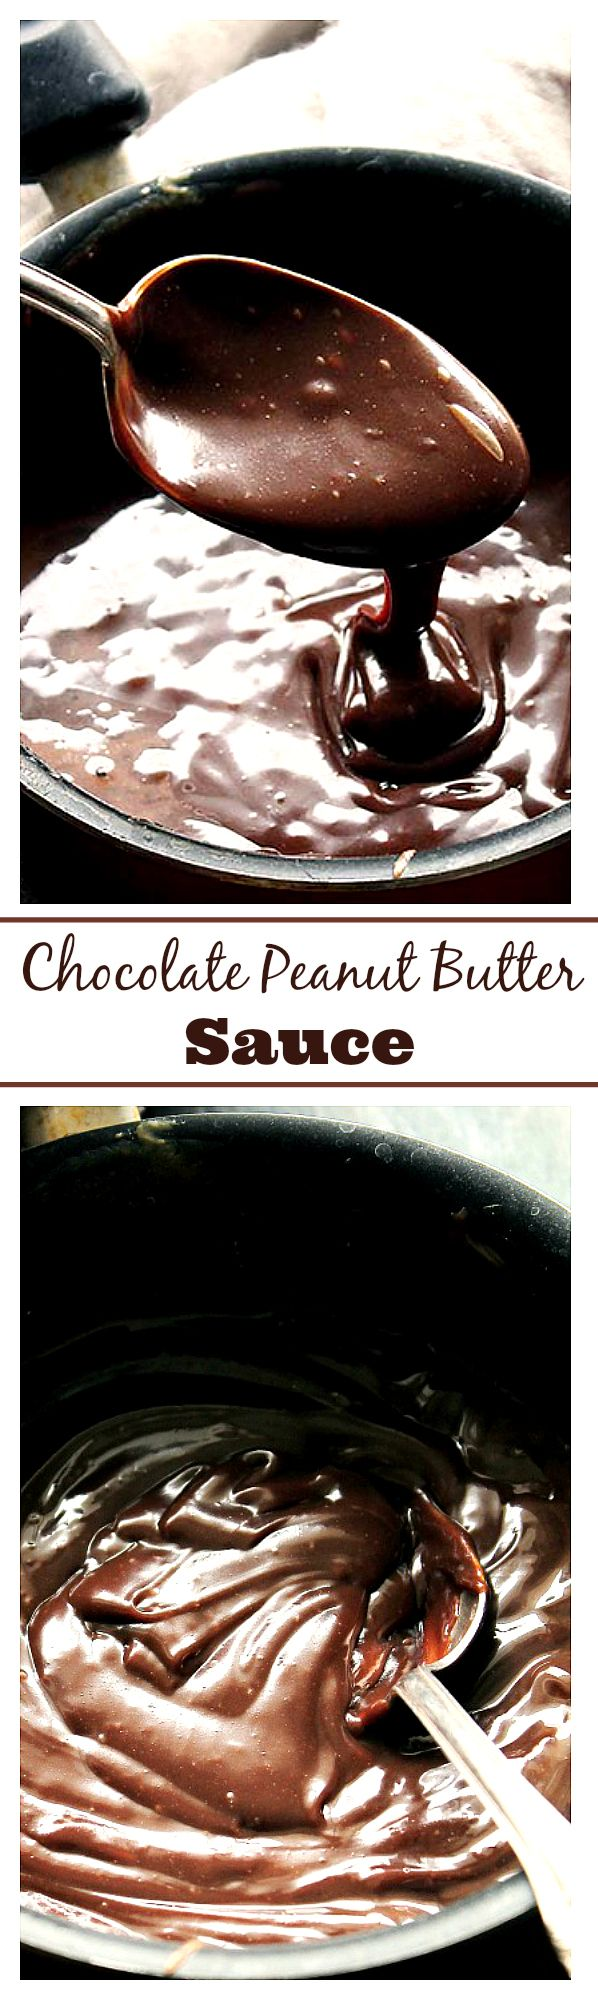 Chocolate Peanut Butter Hot Fudge Sauce - A delicious recipe for Hot Fudge Sauce made with Chocolate Chips and Peanut Butter.